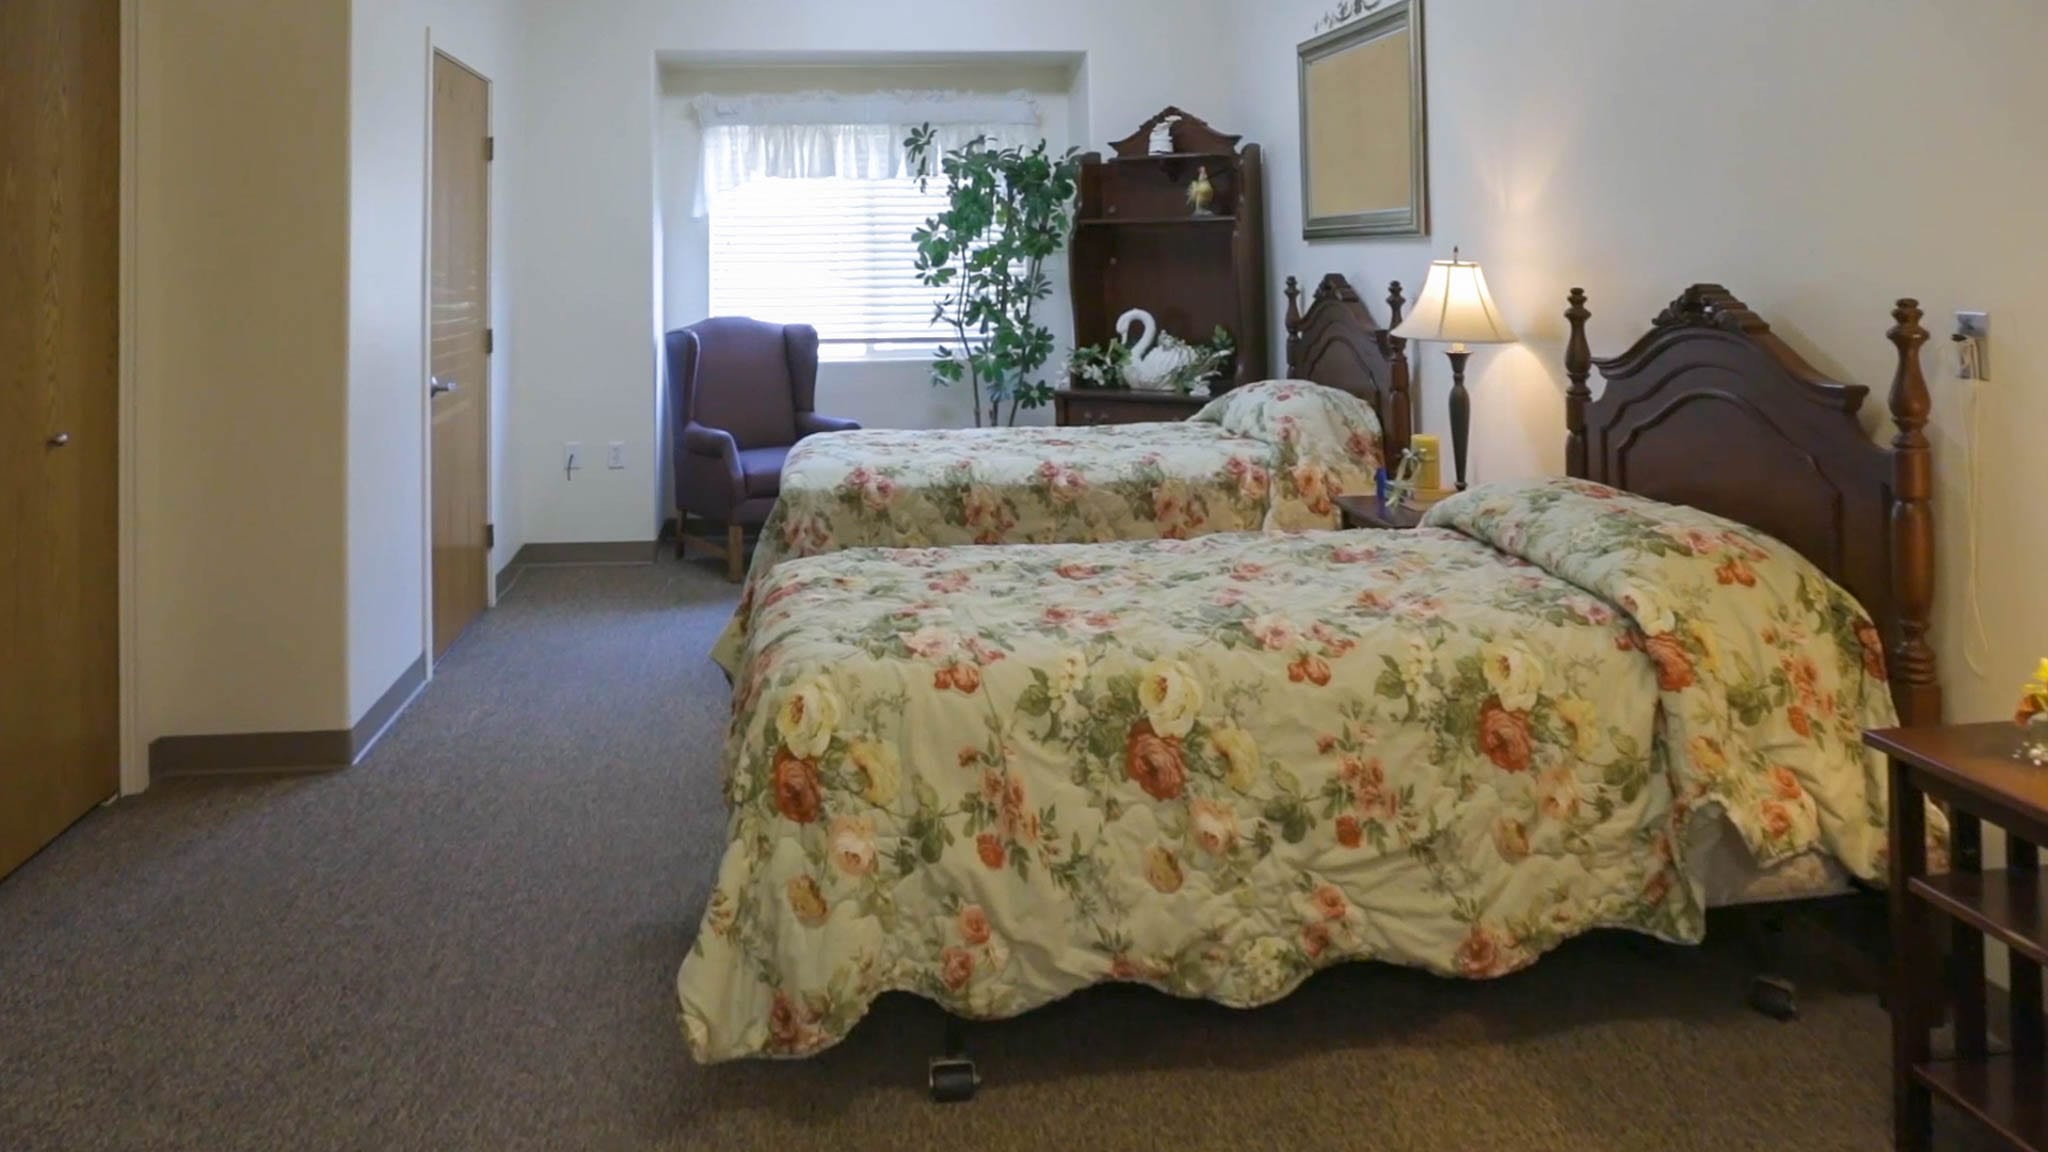 Bedroom in Sierra Village Assisted Living Facility